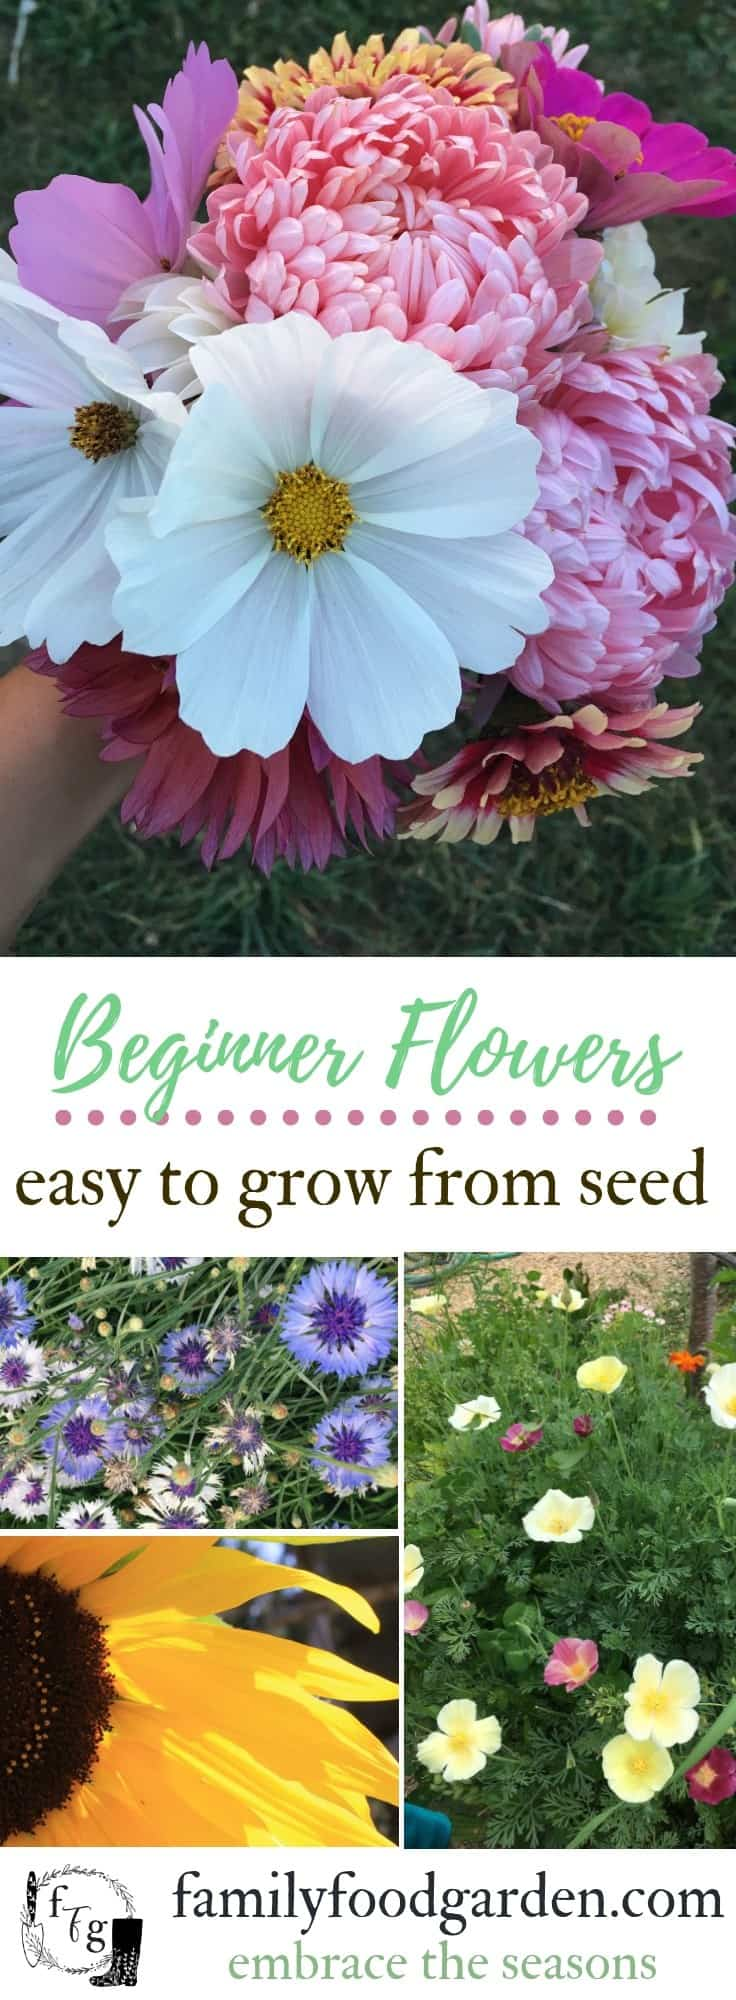 Easy beginner flowers to grow from seed